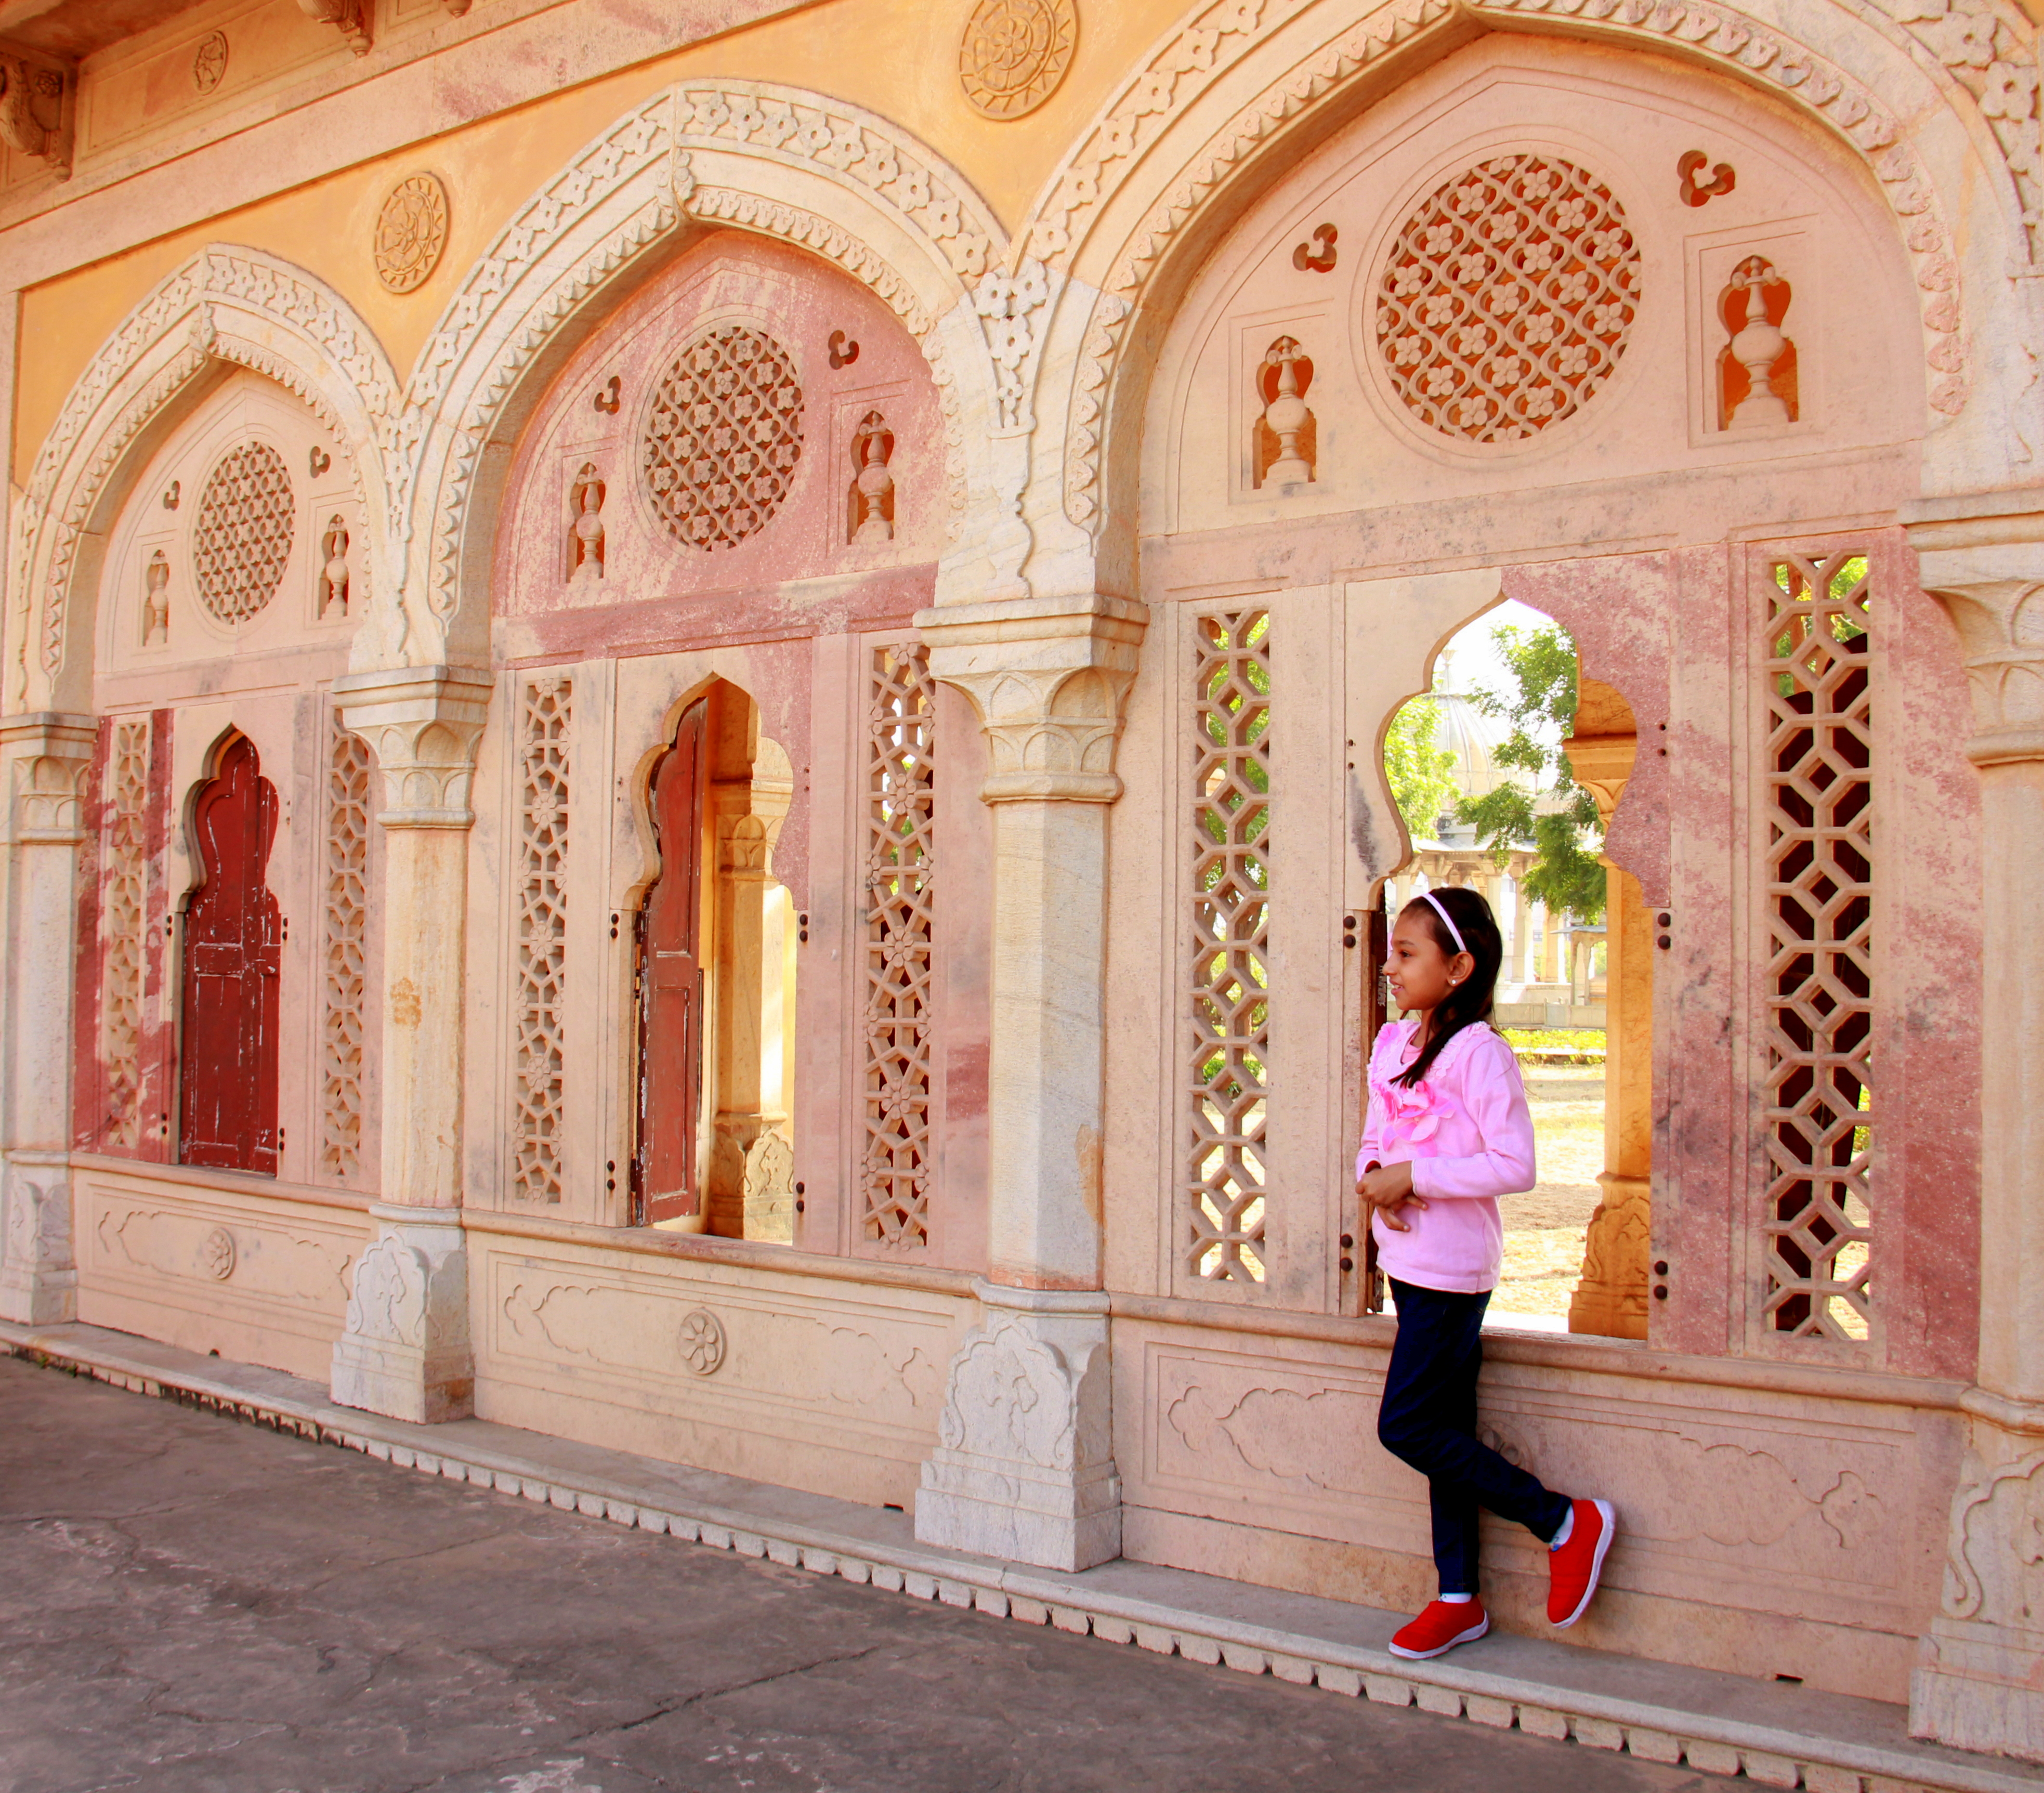 Royal cenotaph is a relaxing space in jaipur with kids